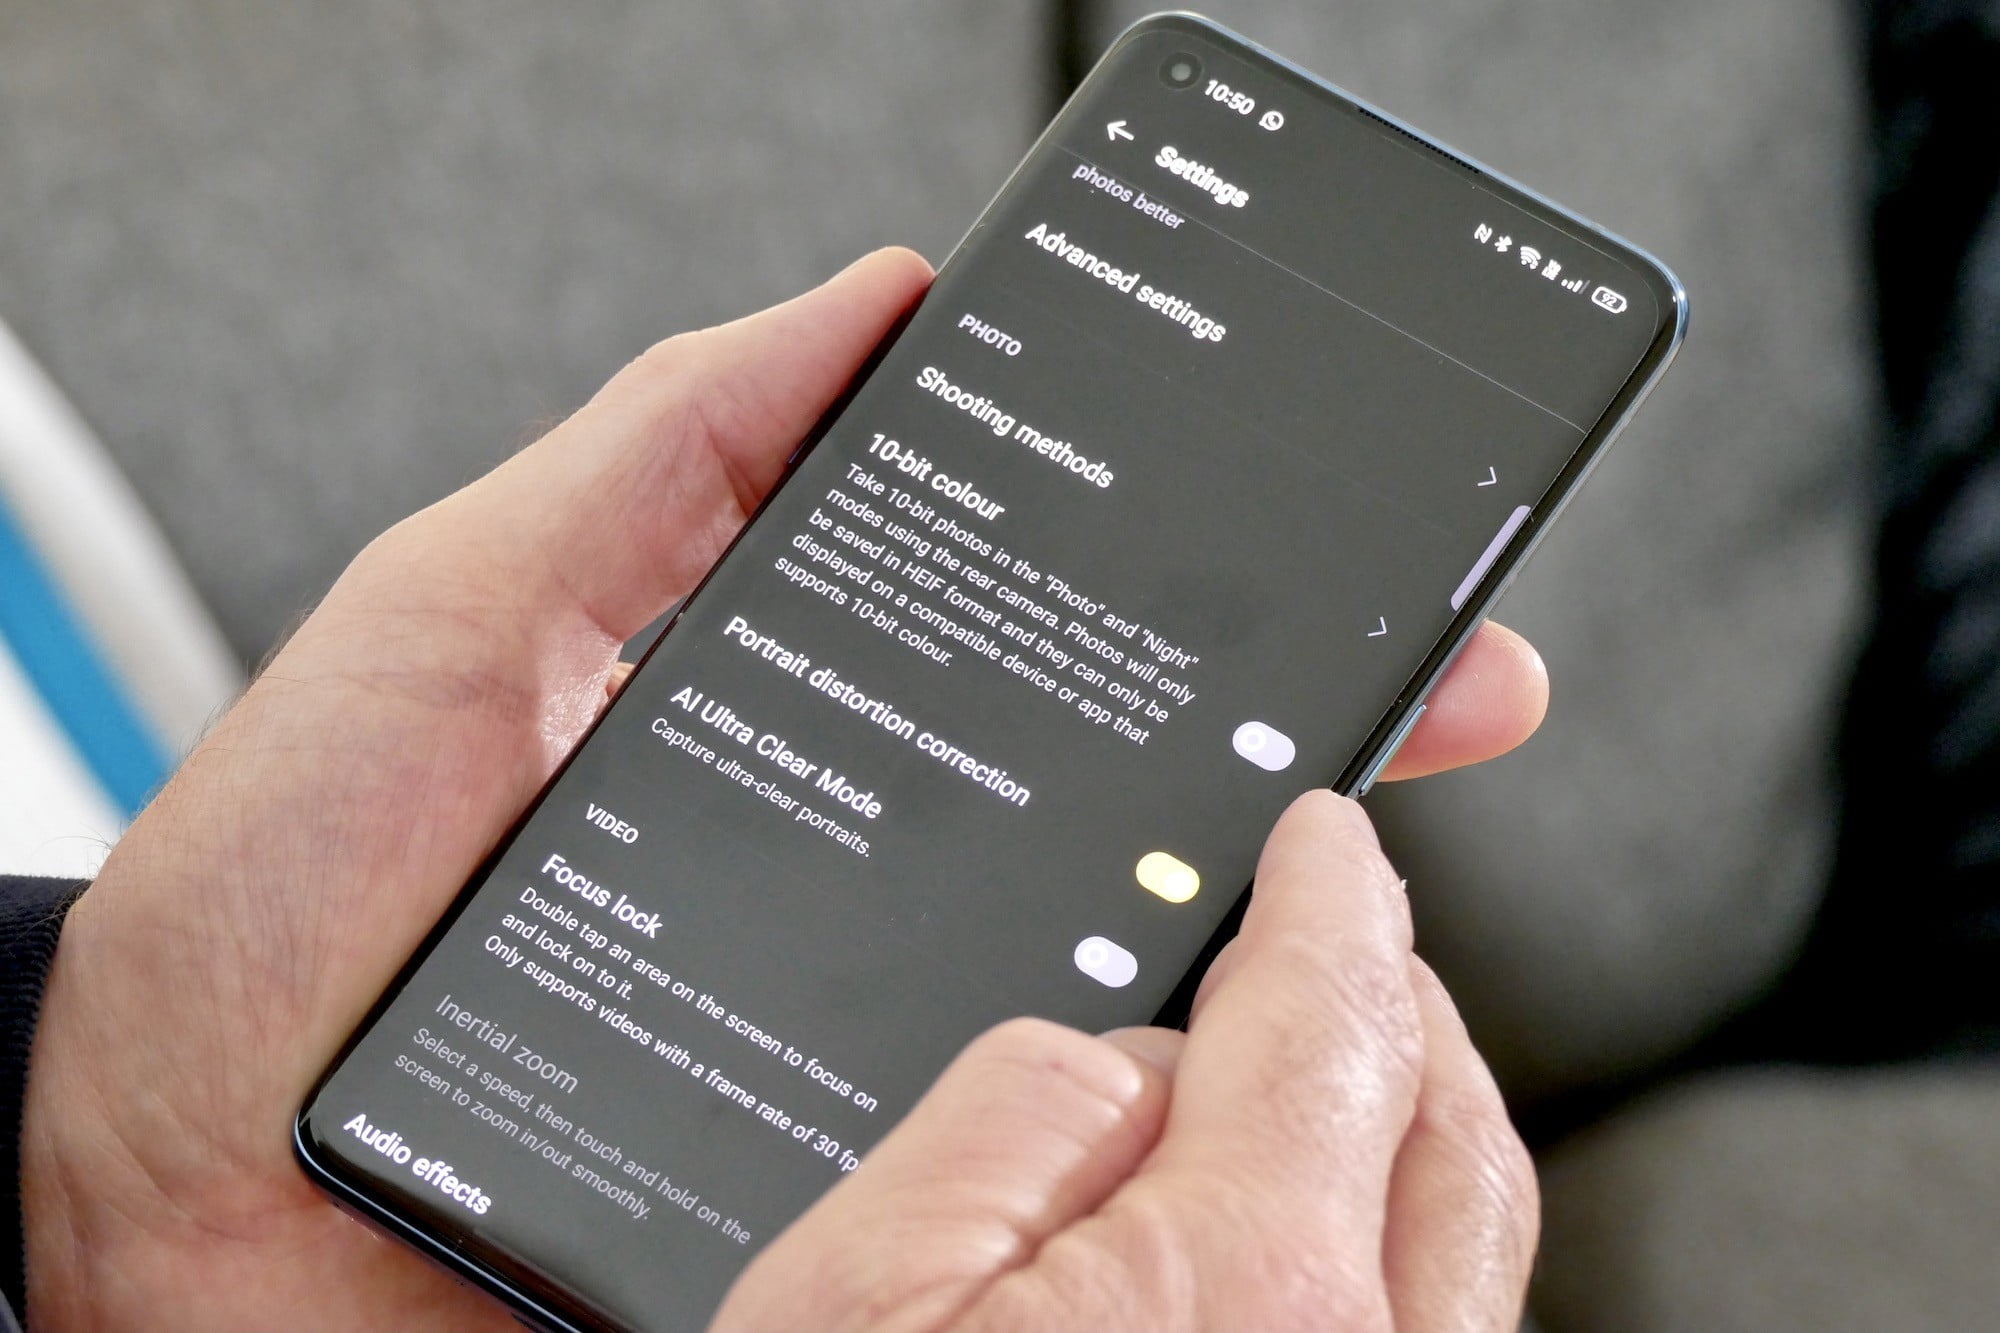 oppo find x3 pro review 10 bit setting